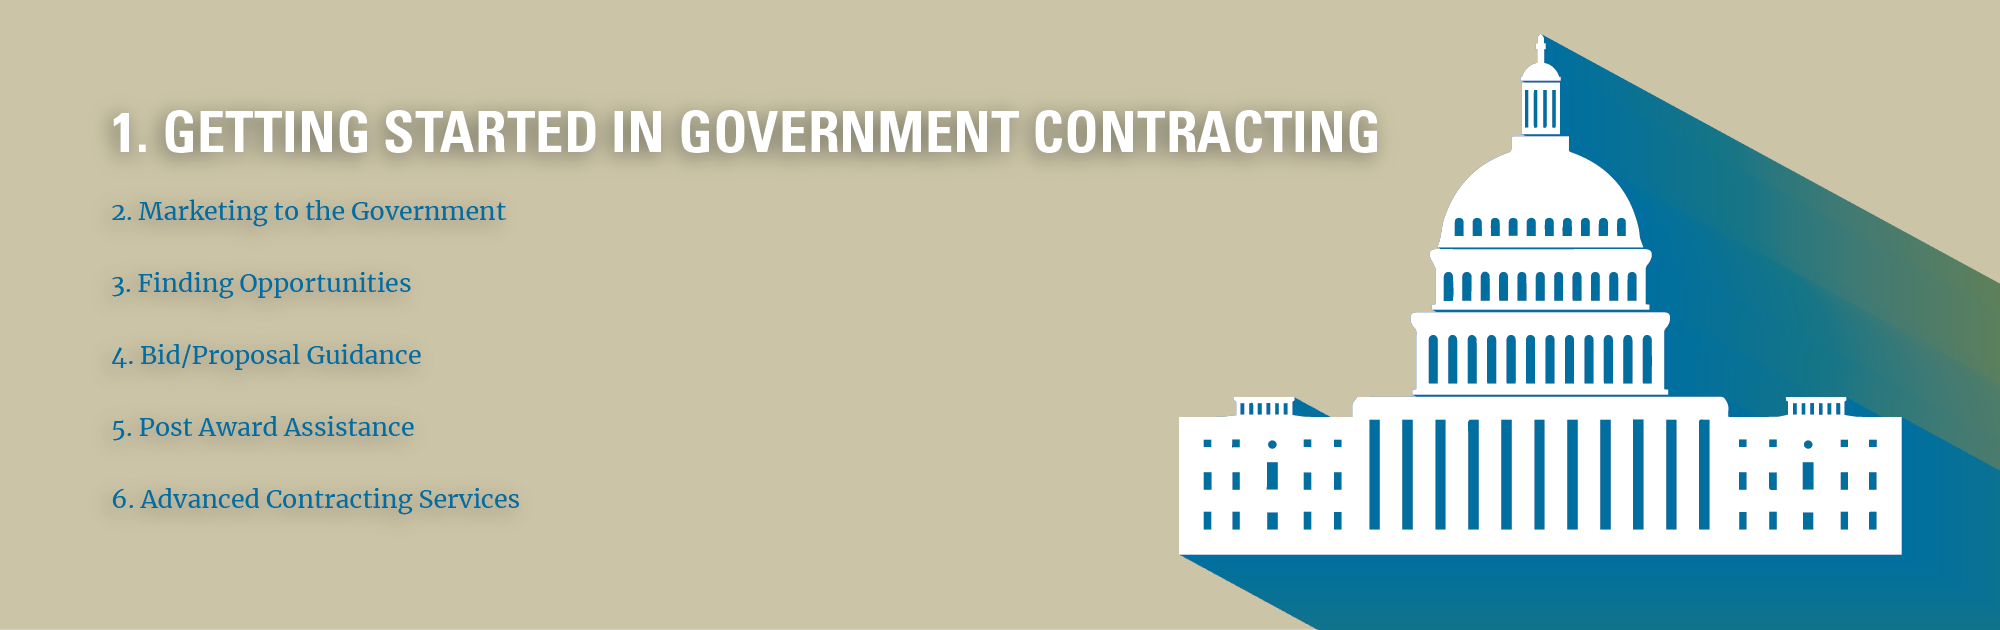 U.S. Capitol image - List of steps: 1. Getting Started in Government Contracting.